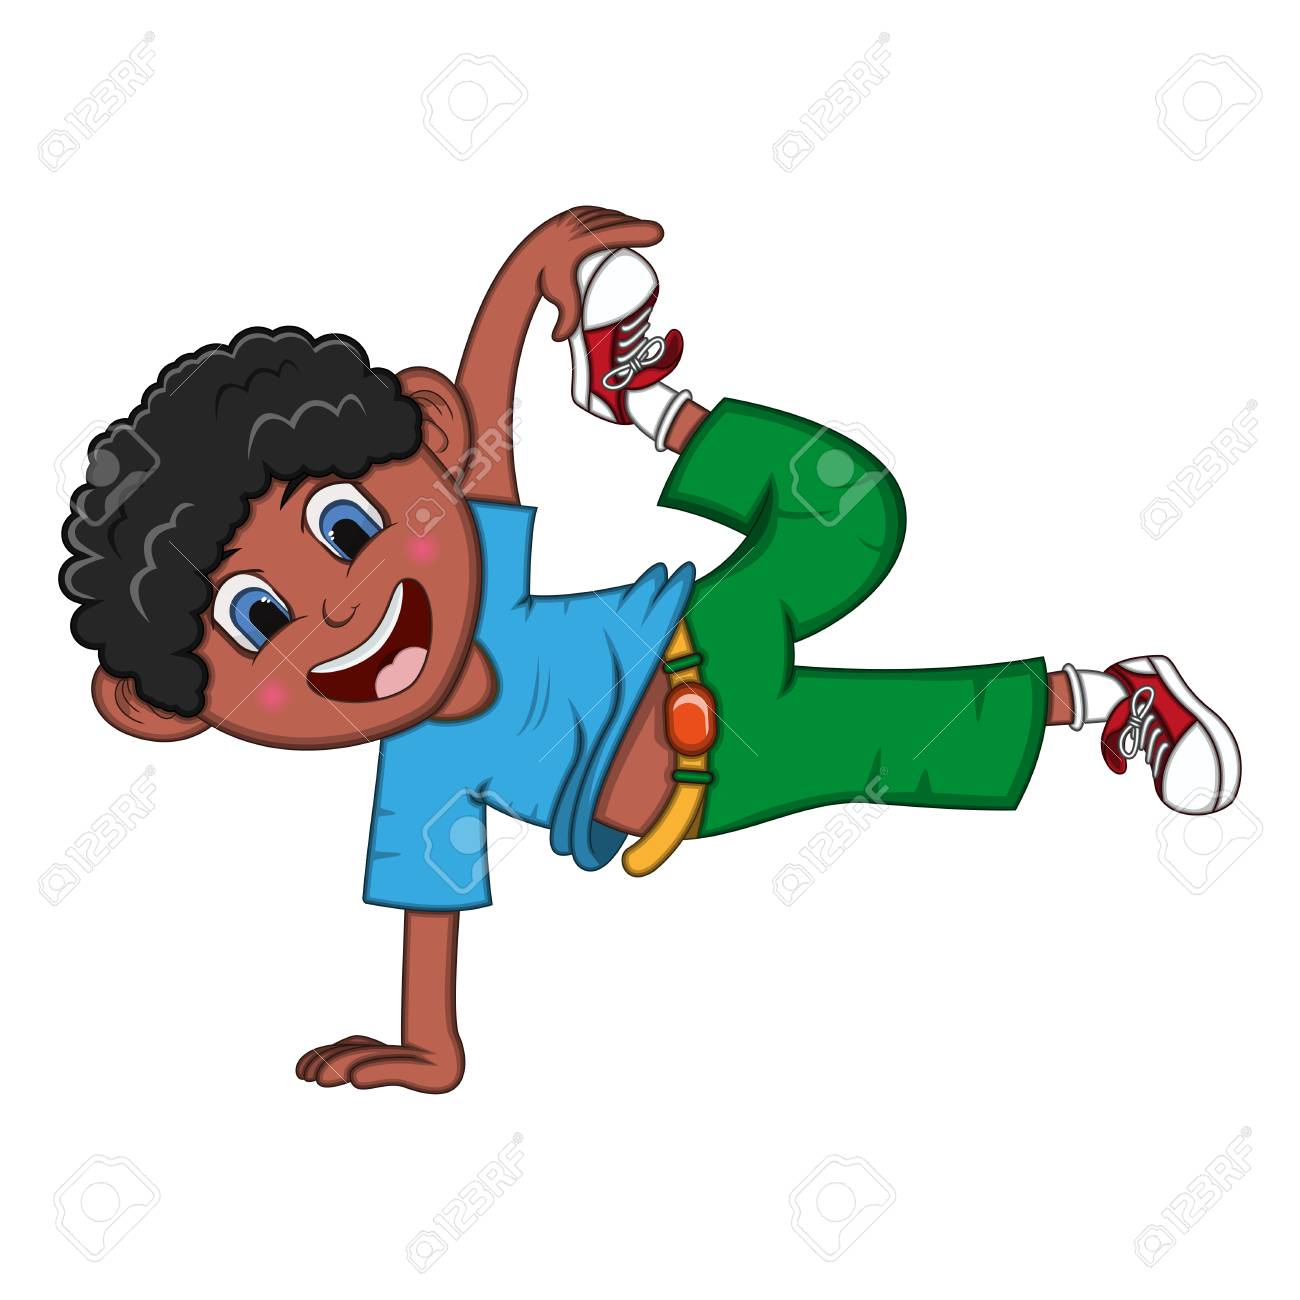 Dancing Boy Cartoon With Floating Pose Stock Vector